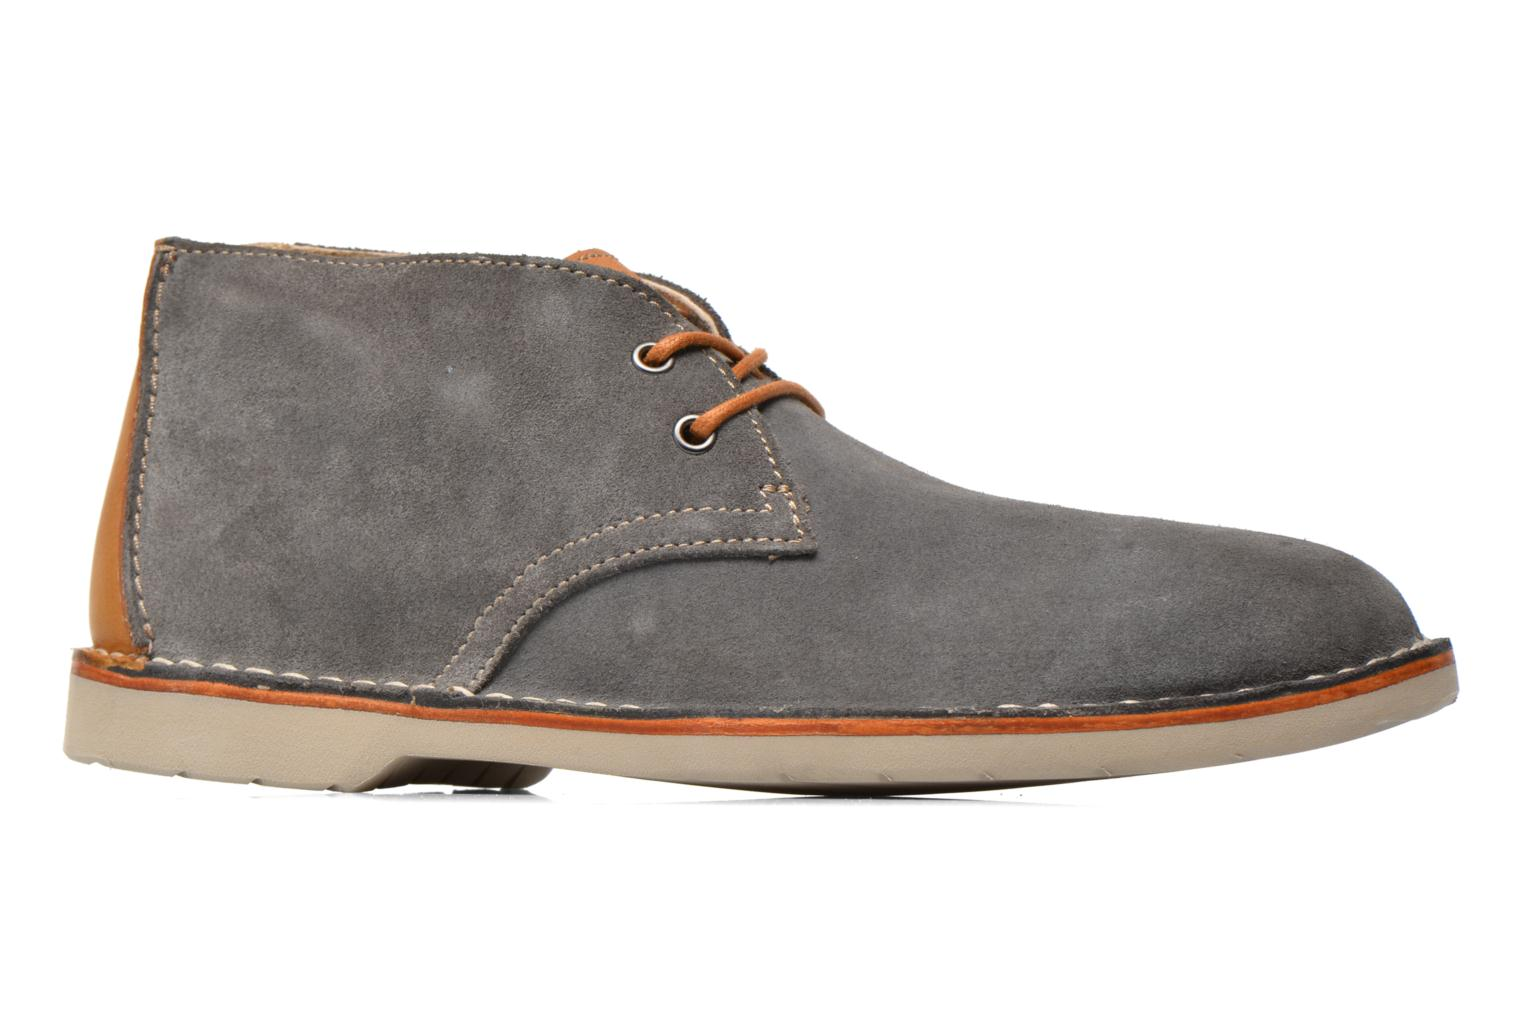 Hinton Rise Denim blue suede